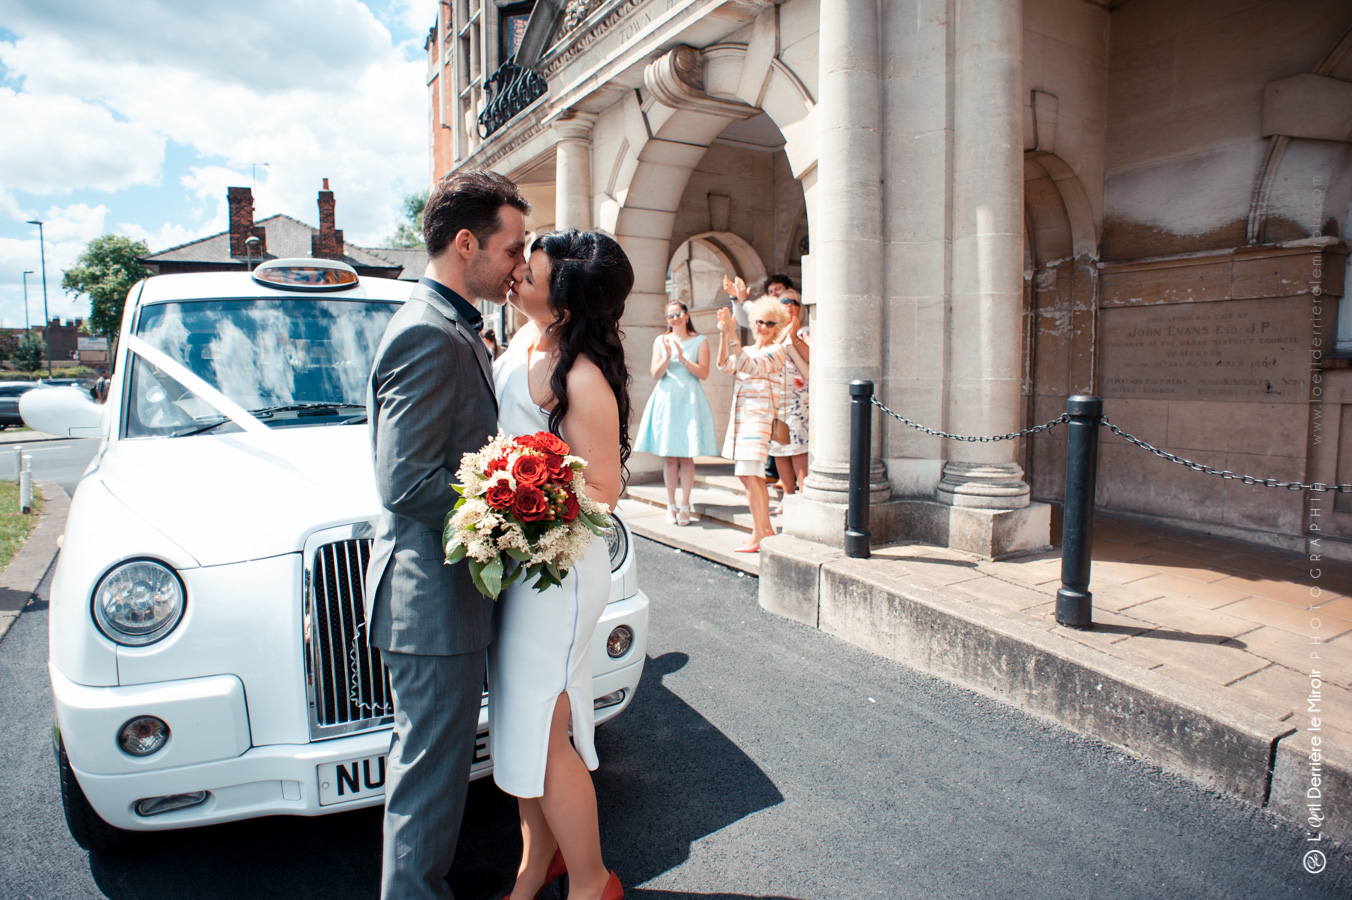 London wedding photographer L'OEil Derriere le Miroir